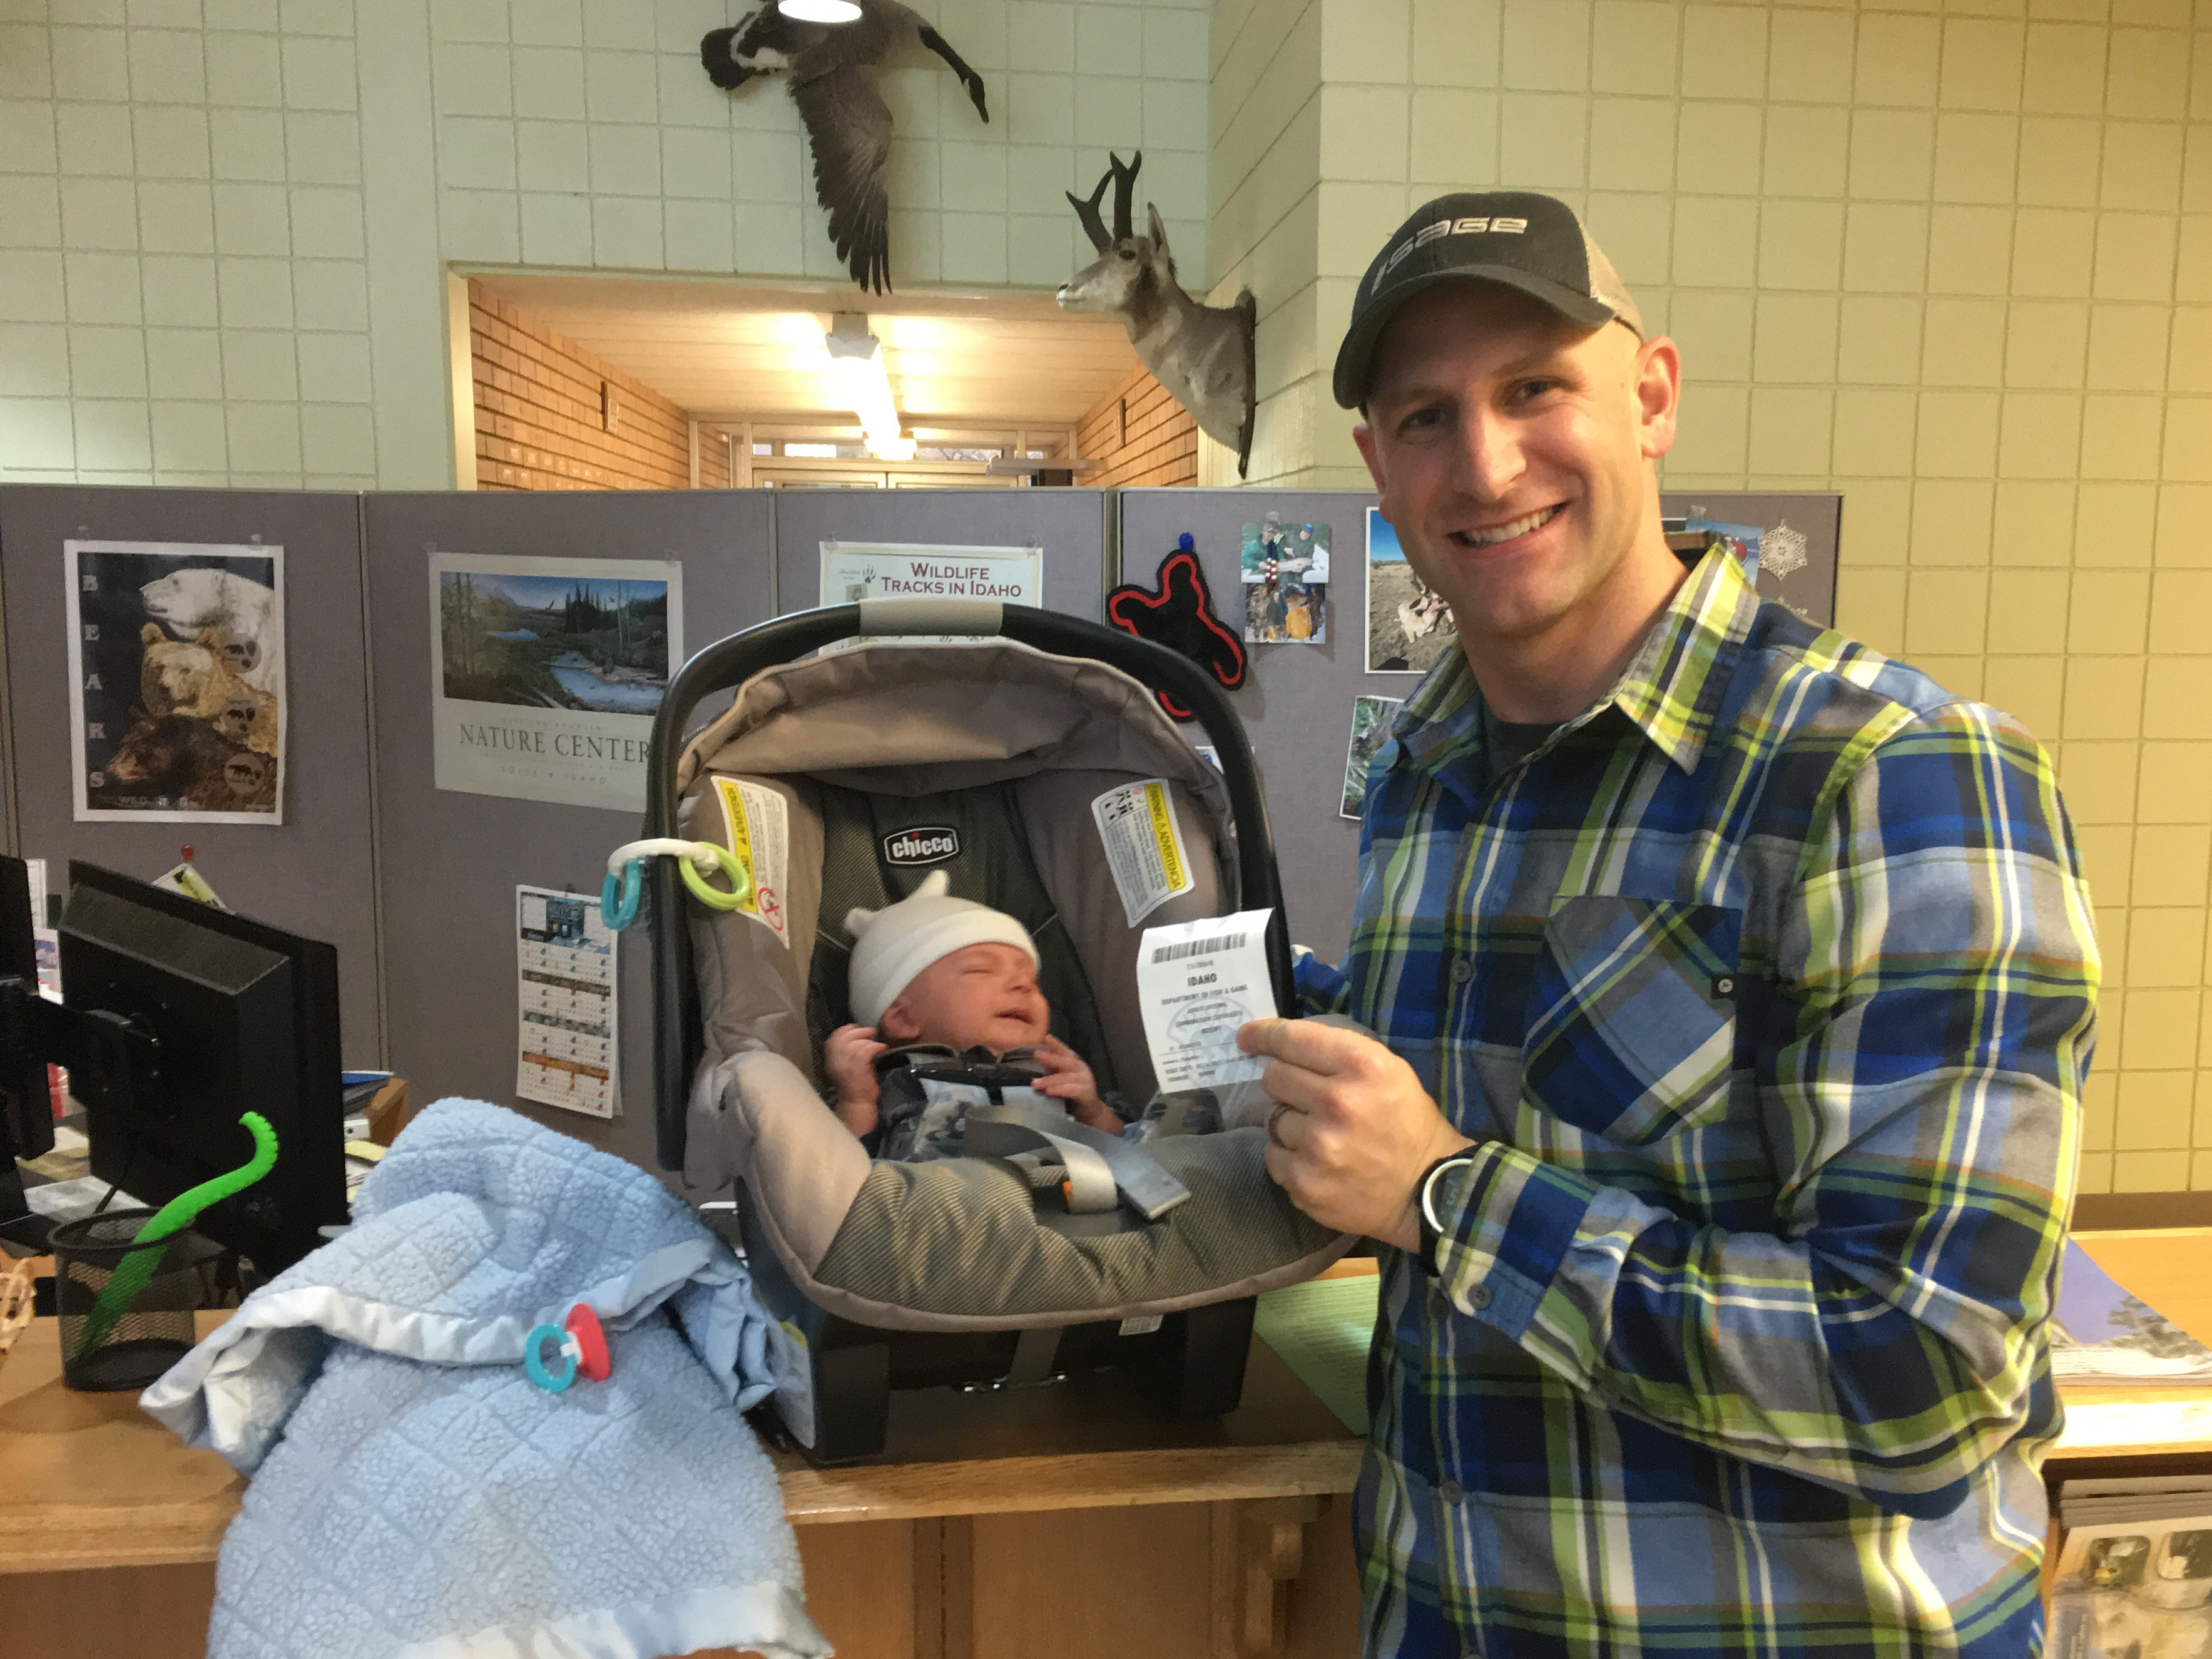 A lifetime license to hunt and fish idaho fish and game proud father joe romero buys lifetime license for his one month old publicscrutiny Images